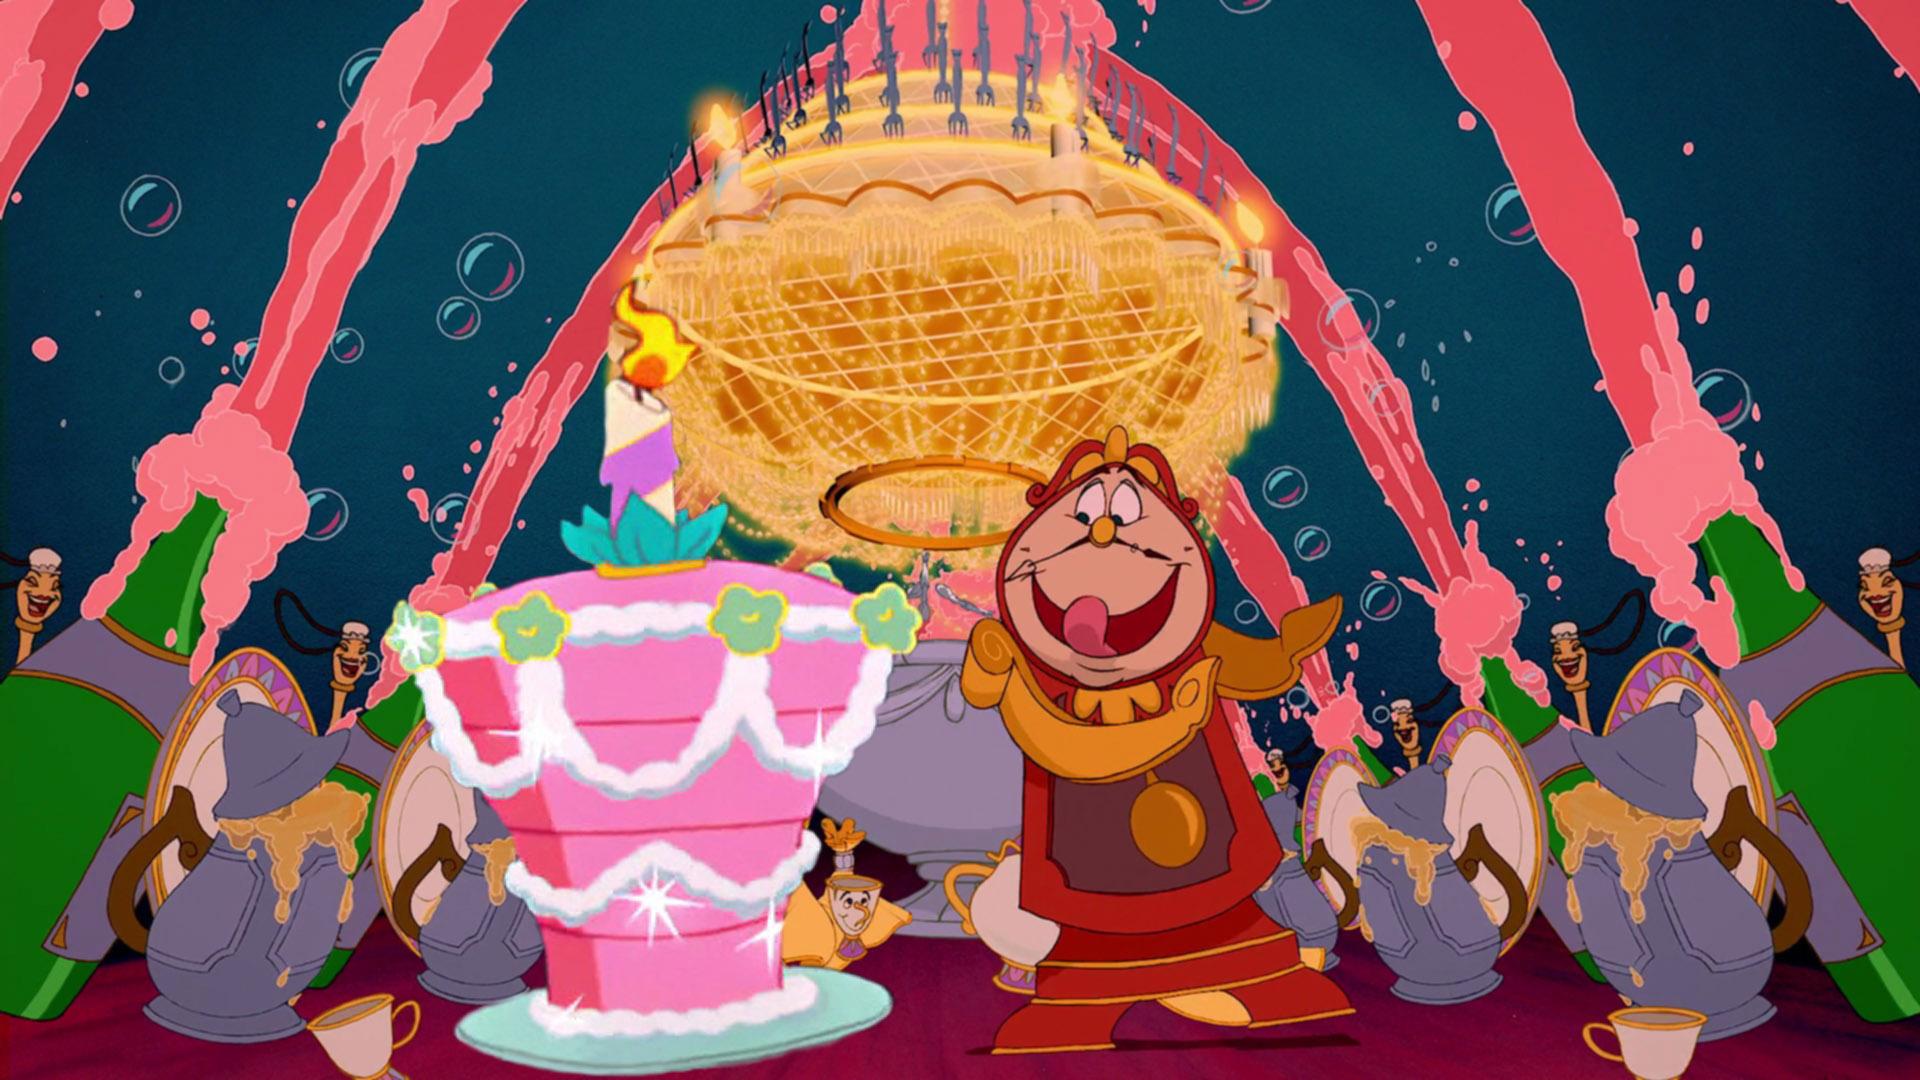 happy-birthday-the-beauty-and-the-beast